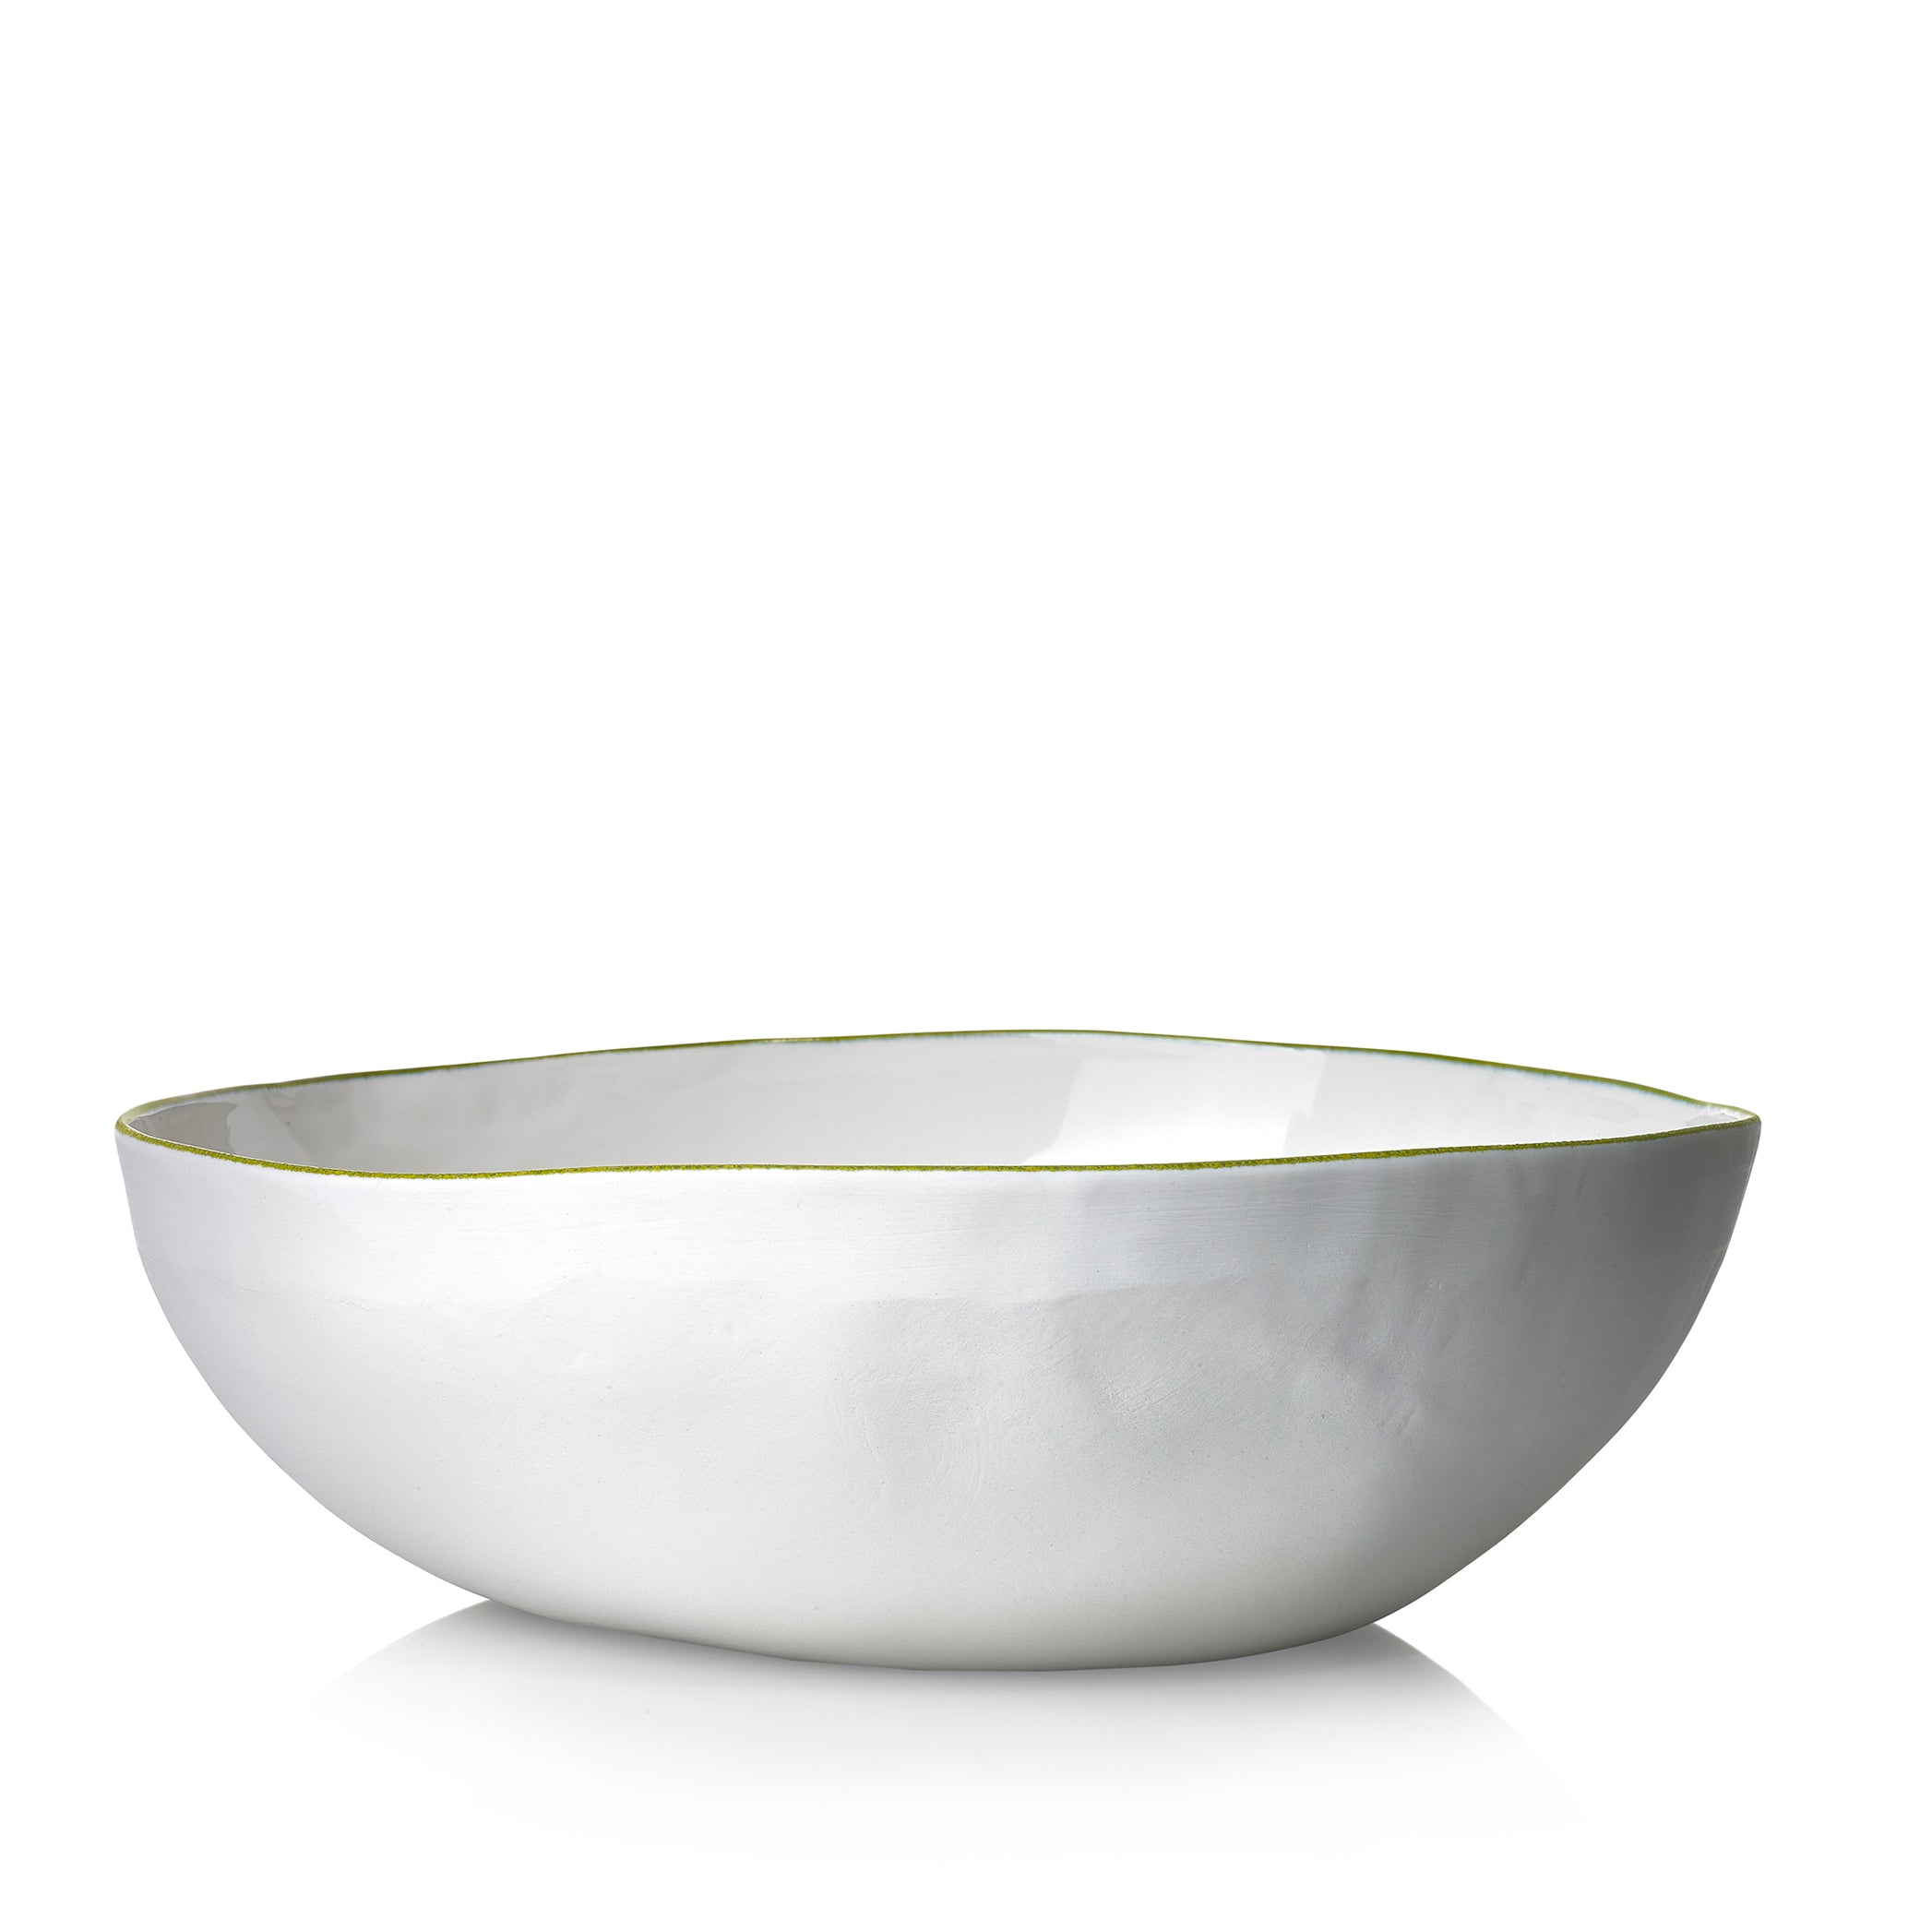 S&B Handmade 30cm Porcelain Medium Salad Bowl with Green Rim